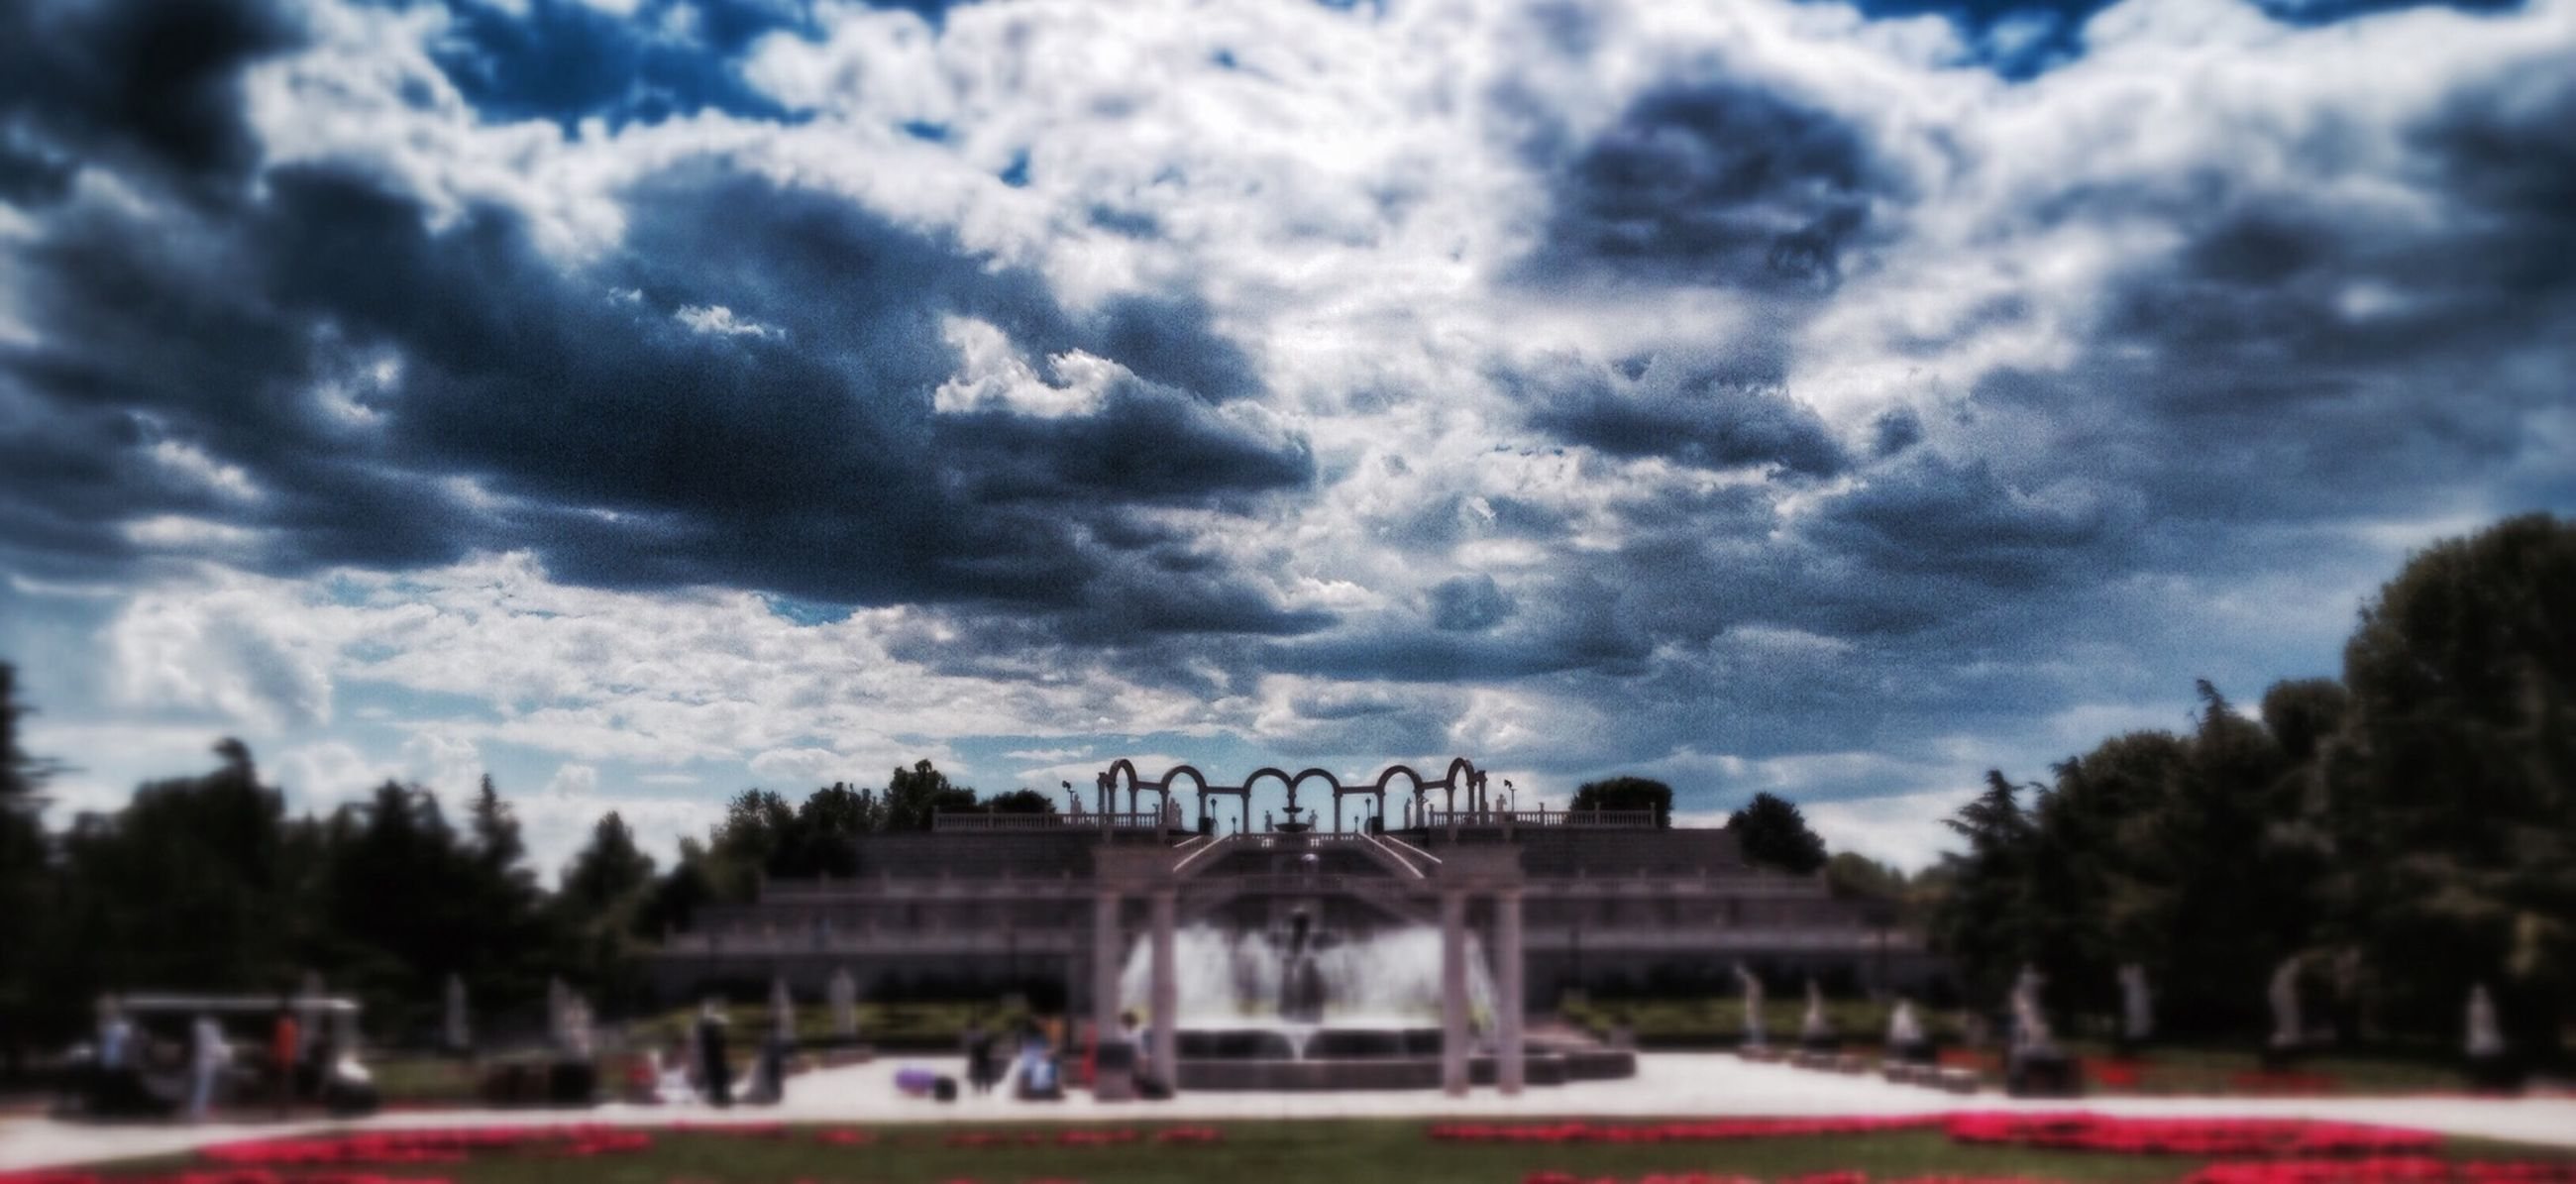 sky, cloud - sky, architecture, tree, cloudy, built structure, building exterior, cloud, overcast, weather, incidental people, travel destinations, outdoors, park - man made space, fountain, day, storm cloud, famous place, dusk, nature